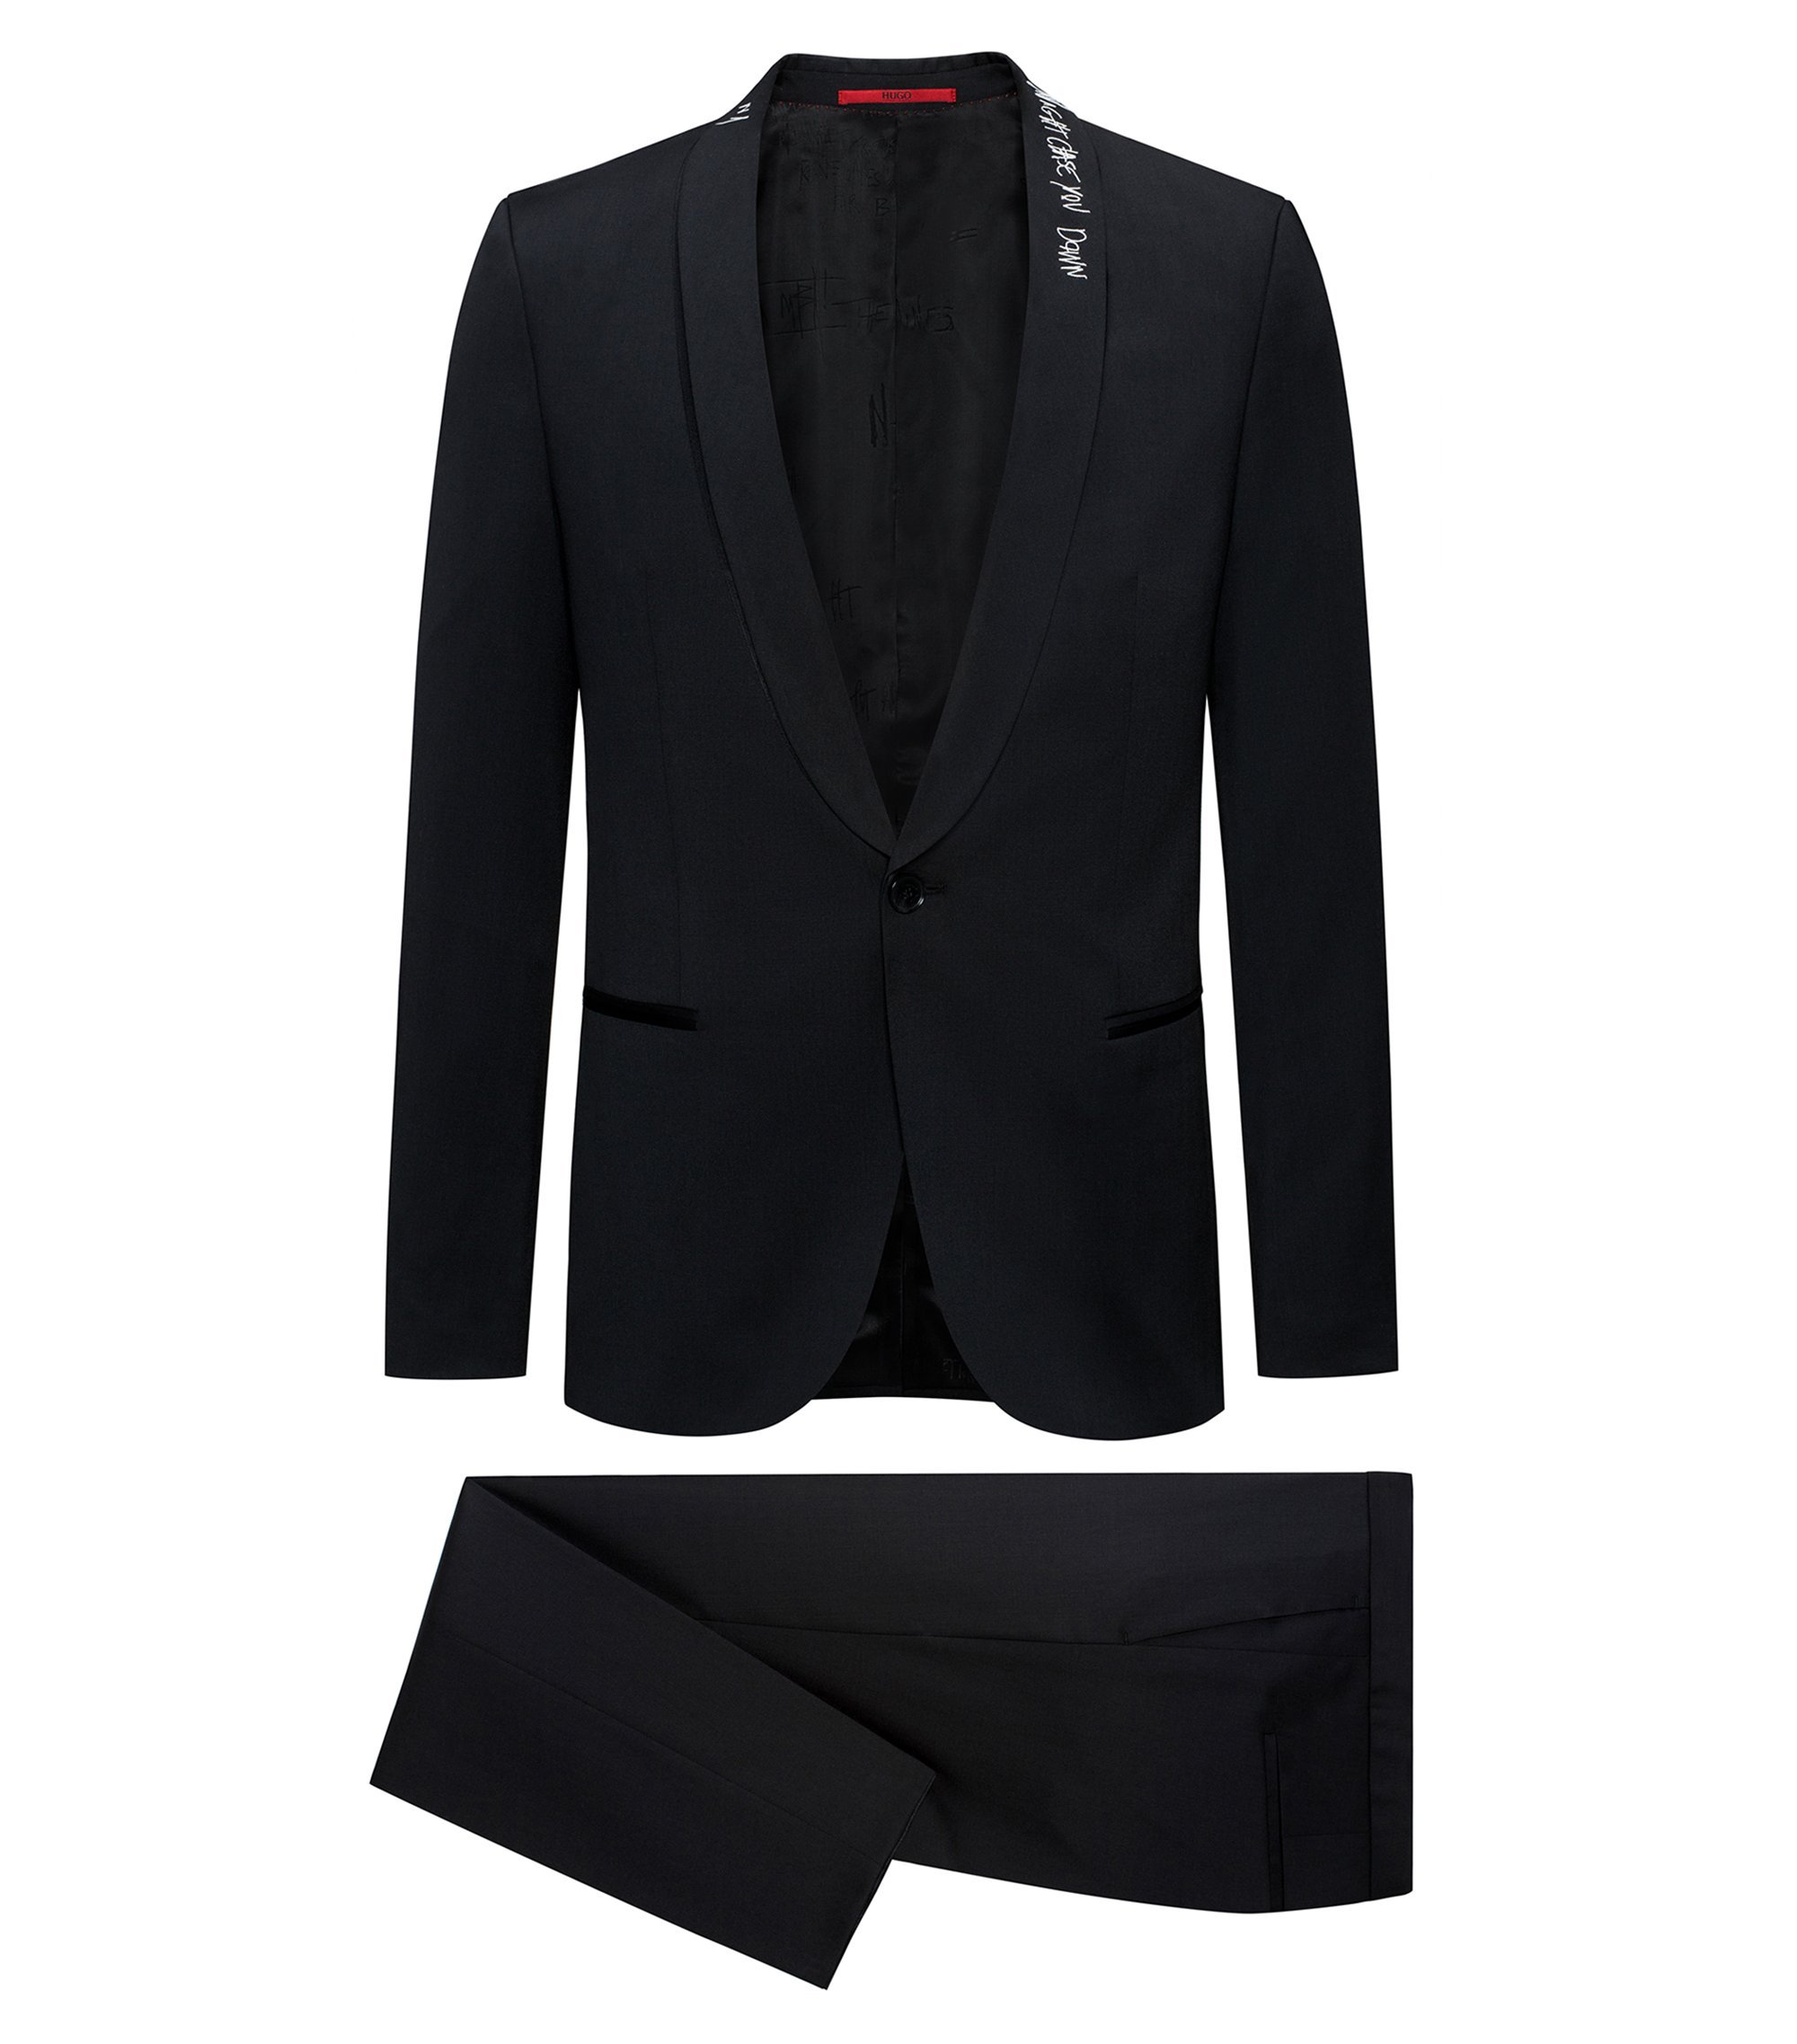 Extra-slim-fit virgin wool suit with graffiti details, Black